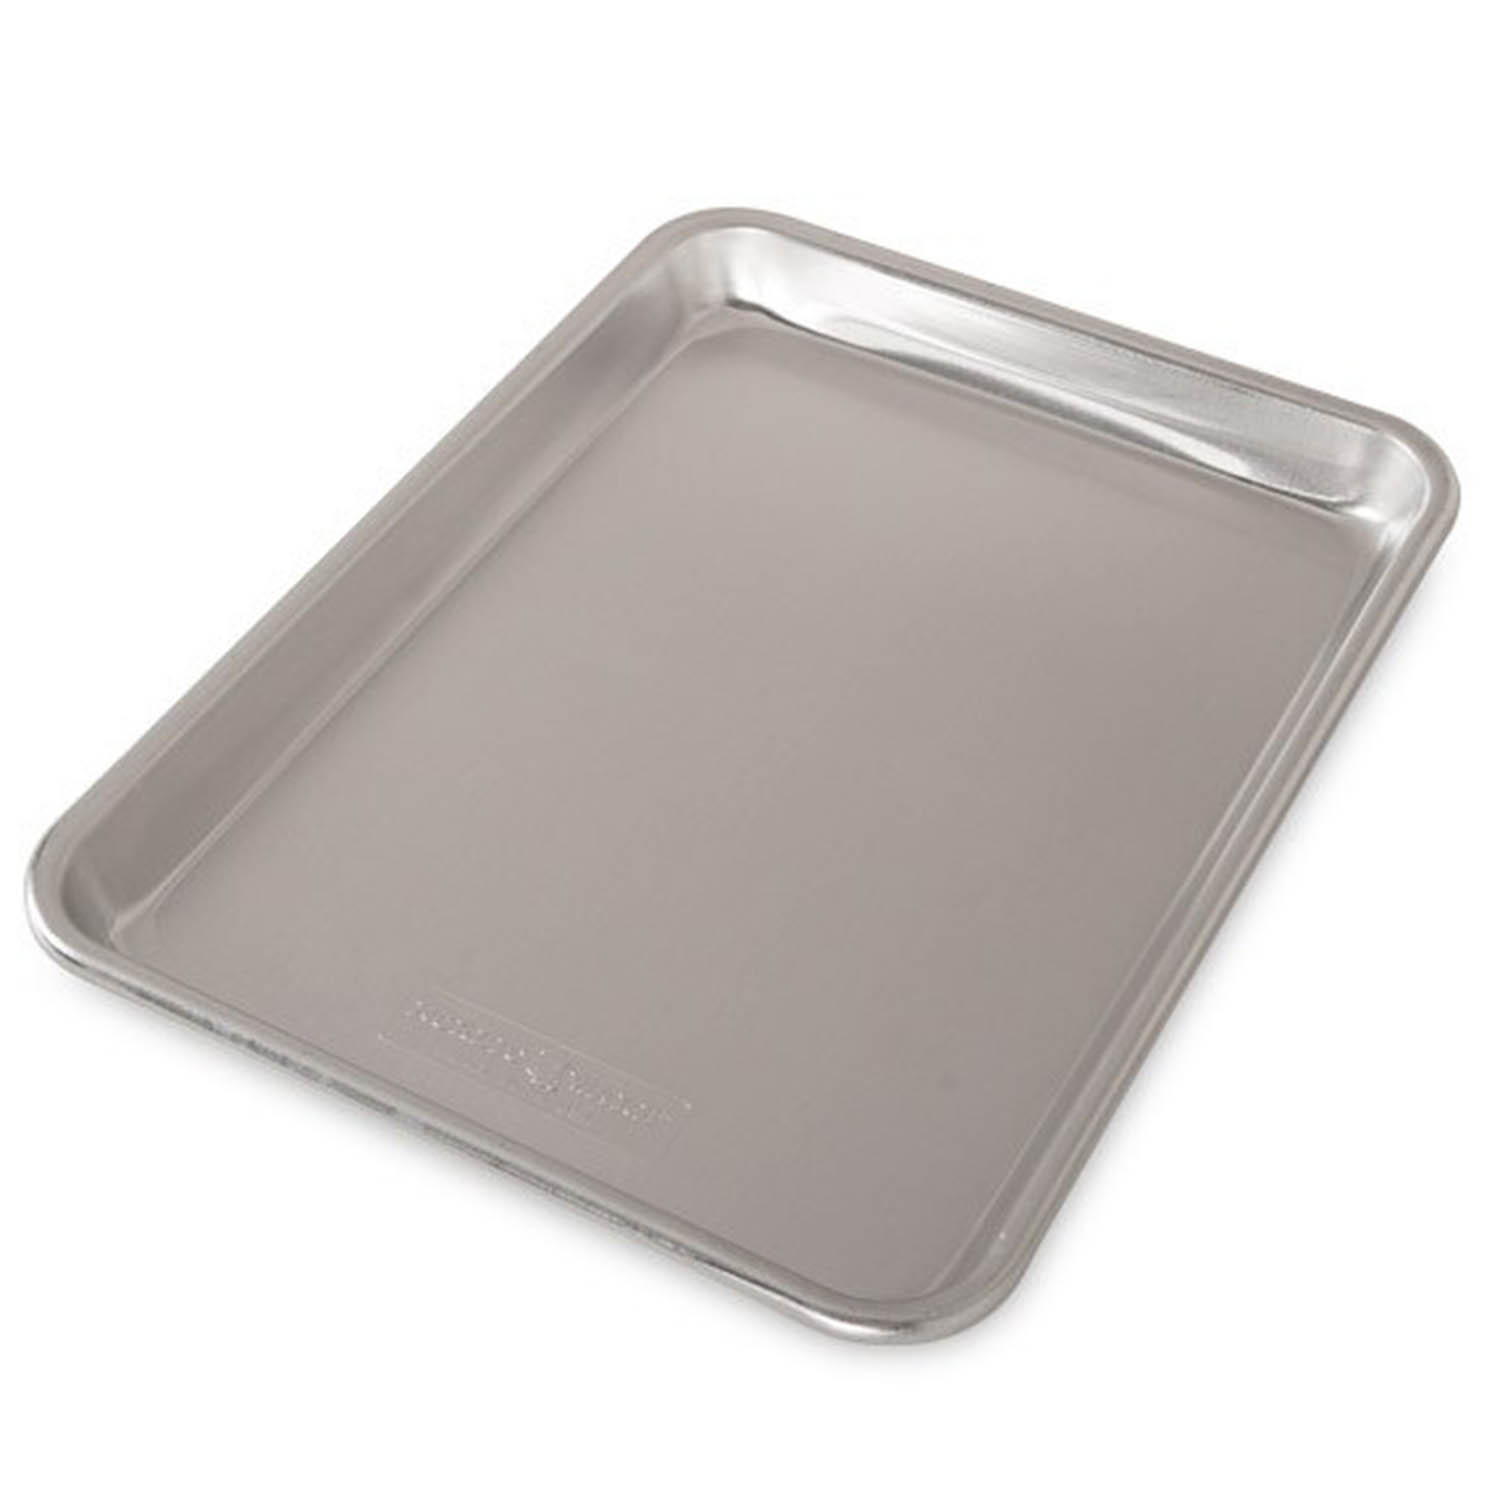 Baker's Quarter Sheet Cake Pan